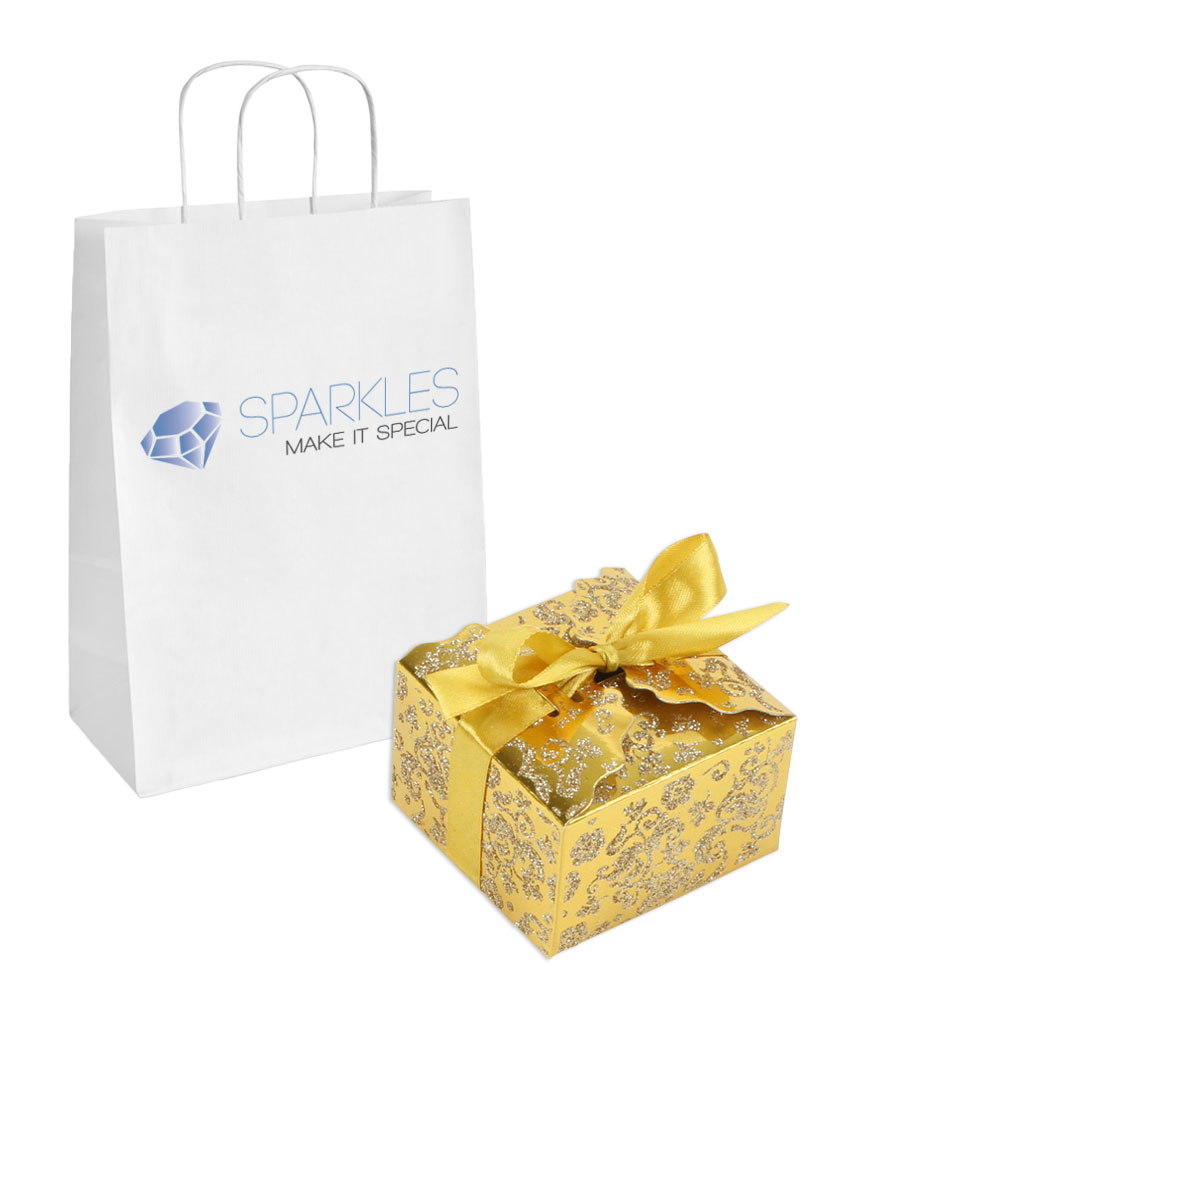 ... -Gold-Medium-Ribbon-Wedding-Favor-Gift-Boxes-Party-Event-Candy-Box